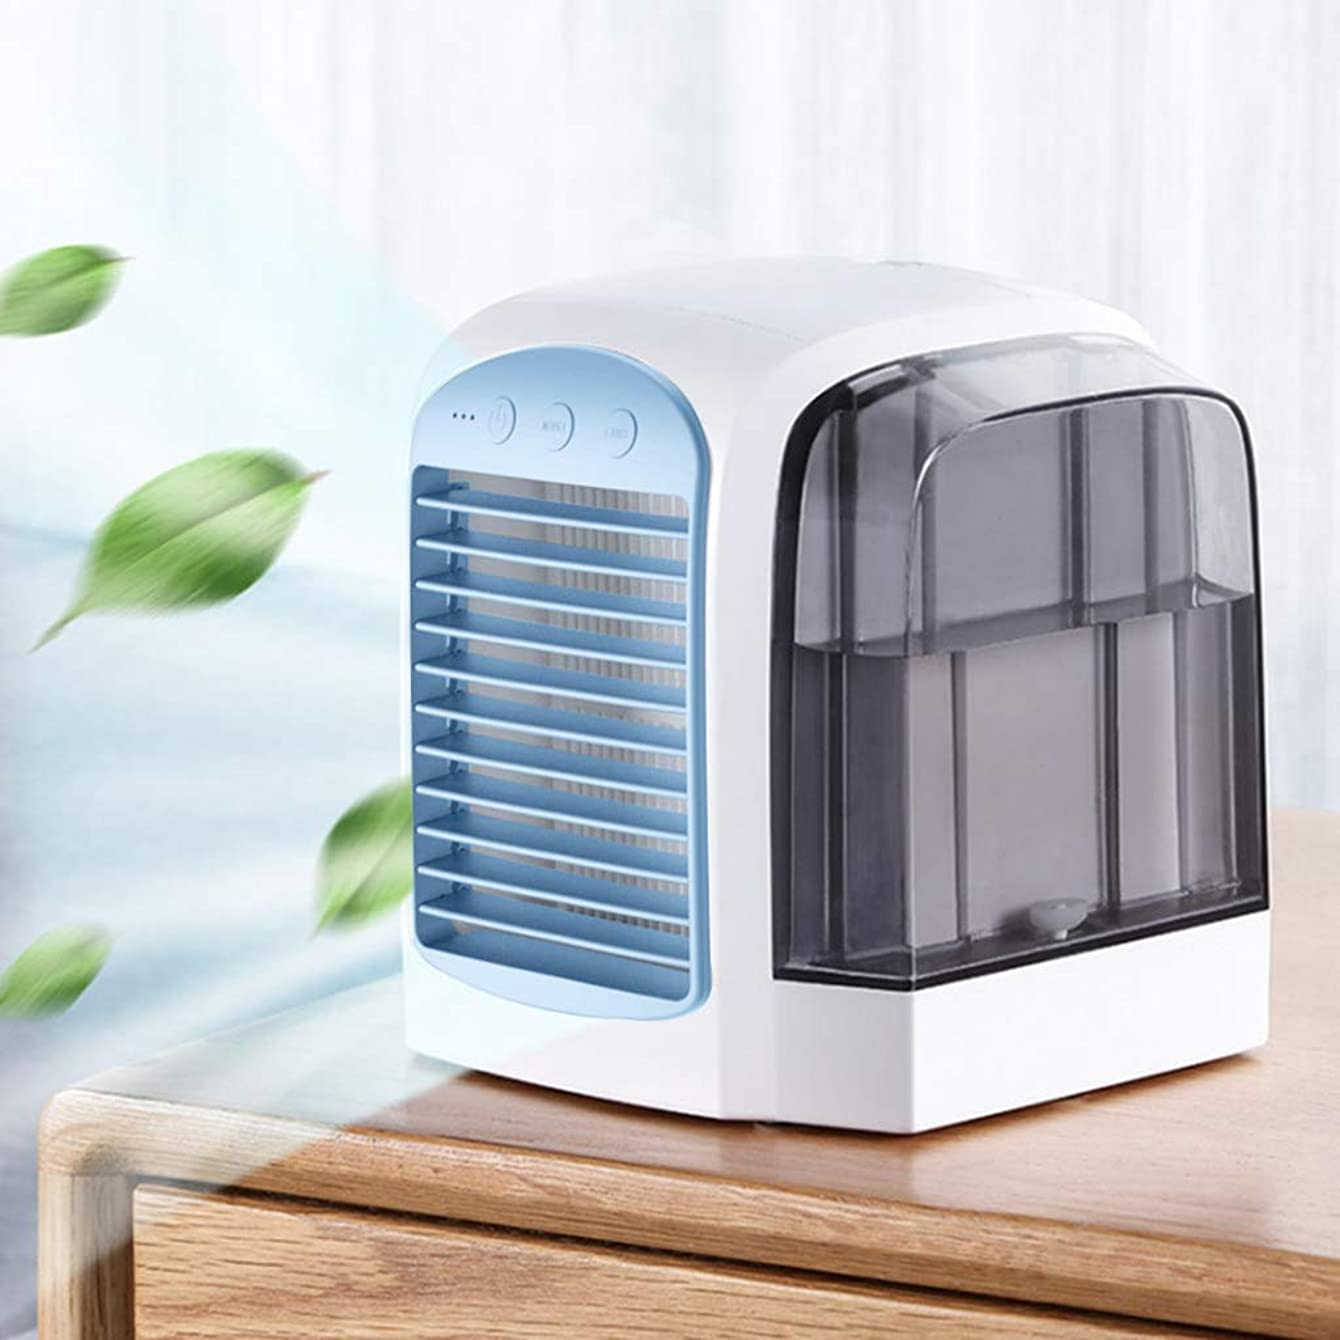 K-Flame Adjustable Air Cooler Air Conditioner Mini Air Cooler with Cooling Fan USB Purifier for Home Office Bedroom Travel